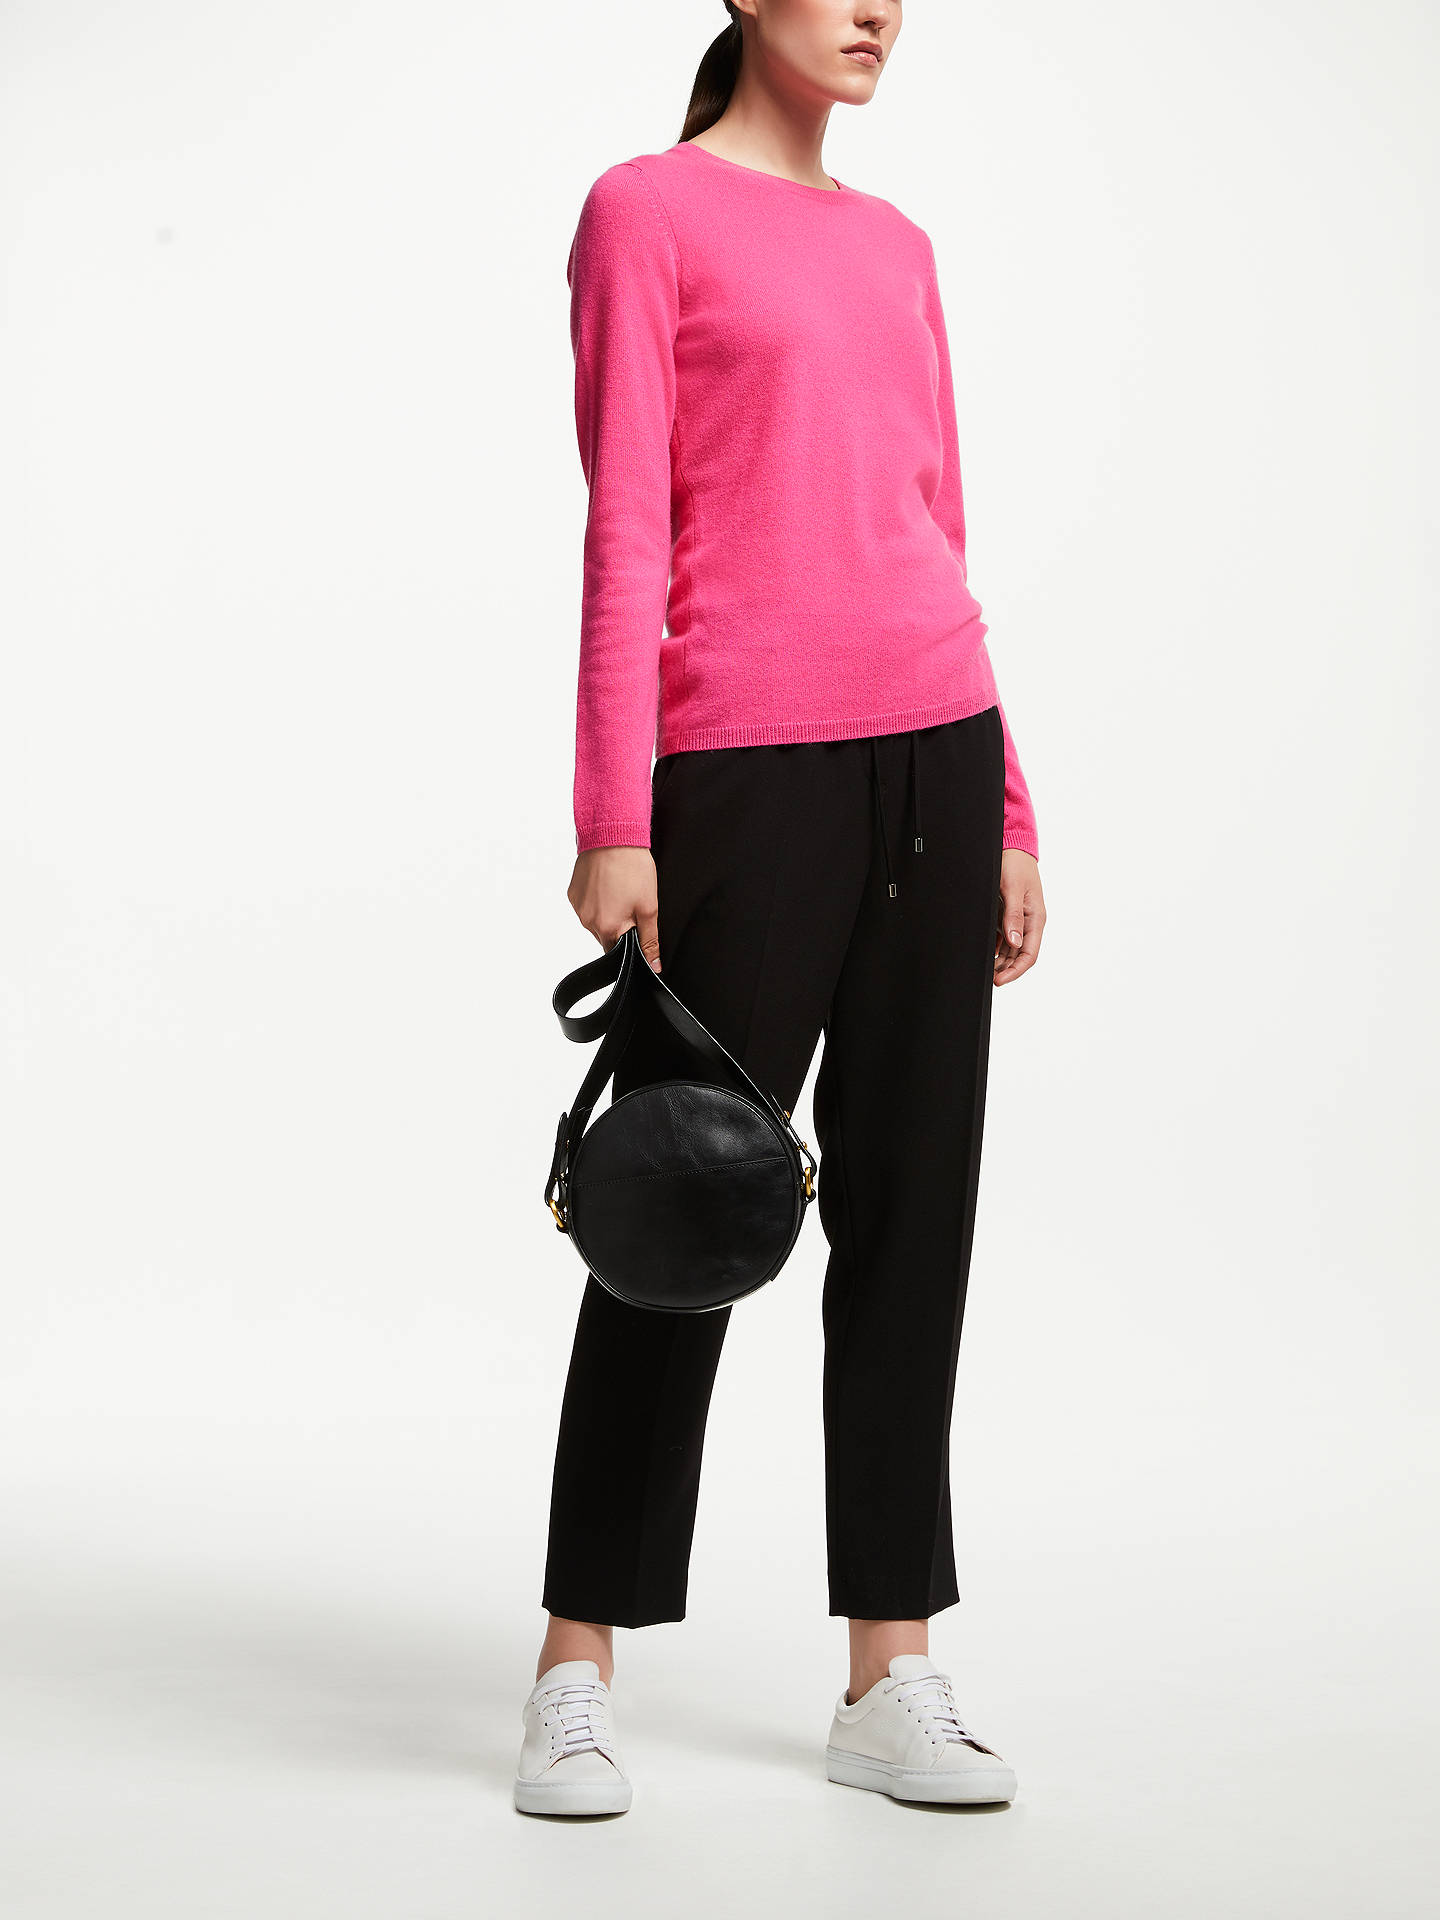 BuyJohn Lewis & Partners Cashmere Crew Neck Sweater, Raspberry, 12 Online at johnlewis.com